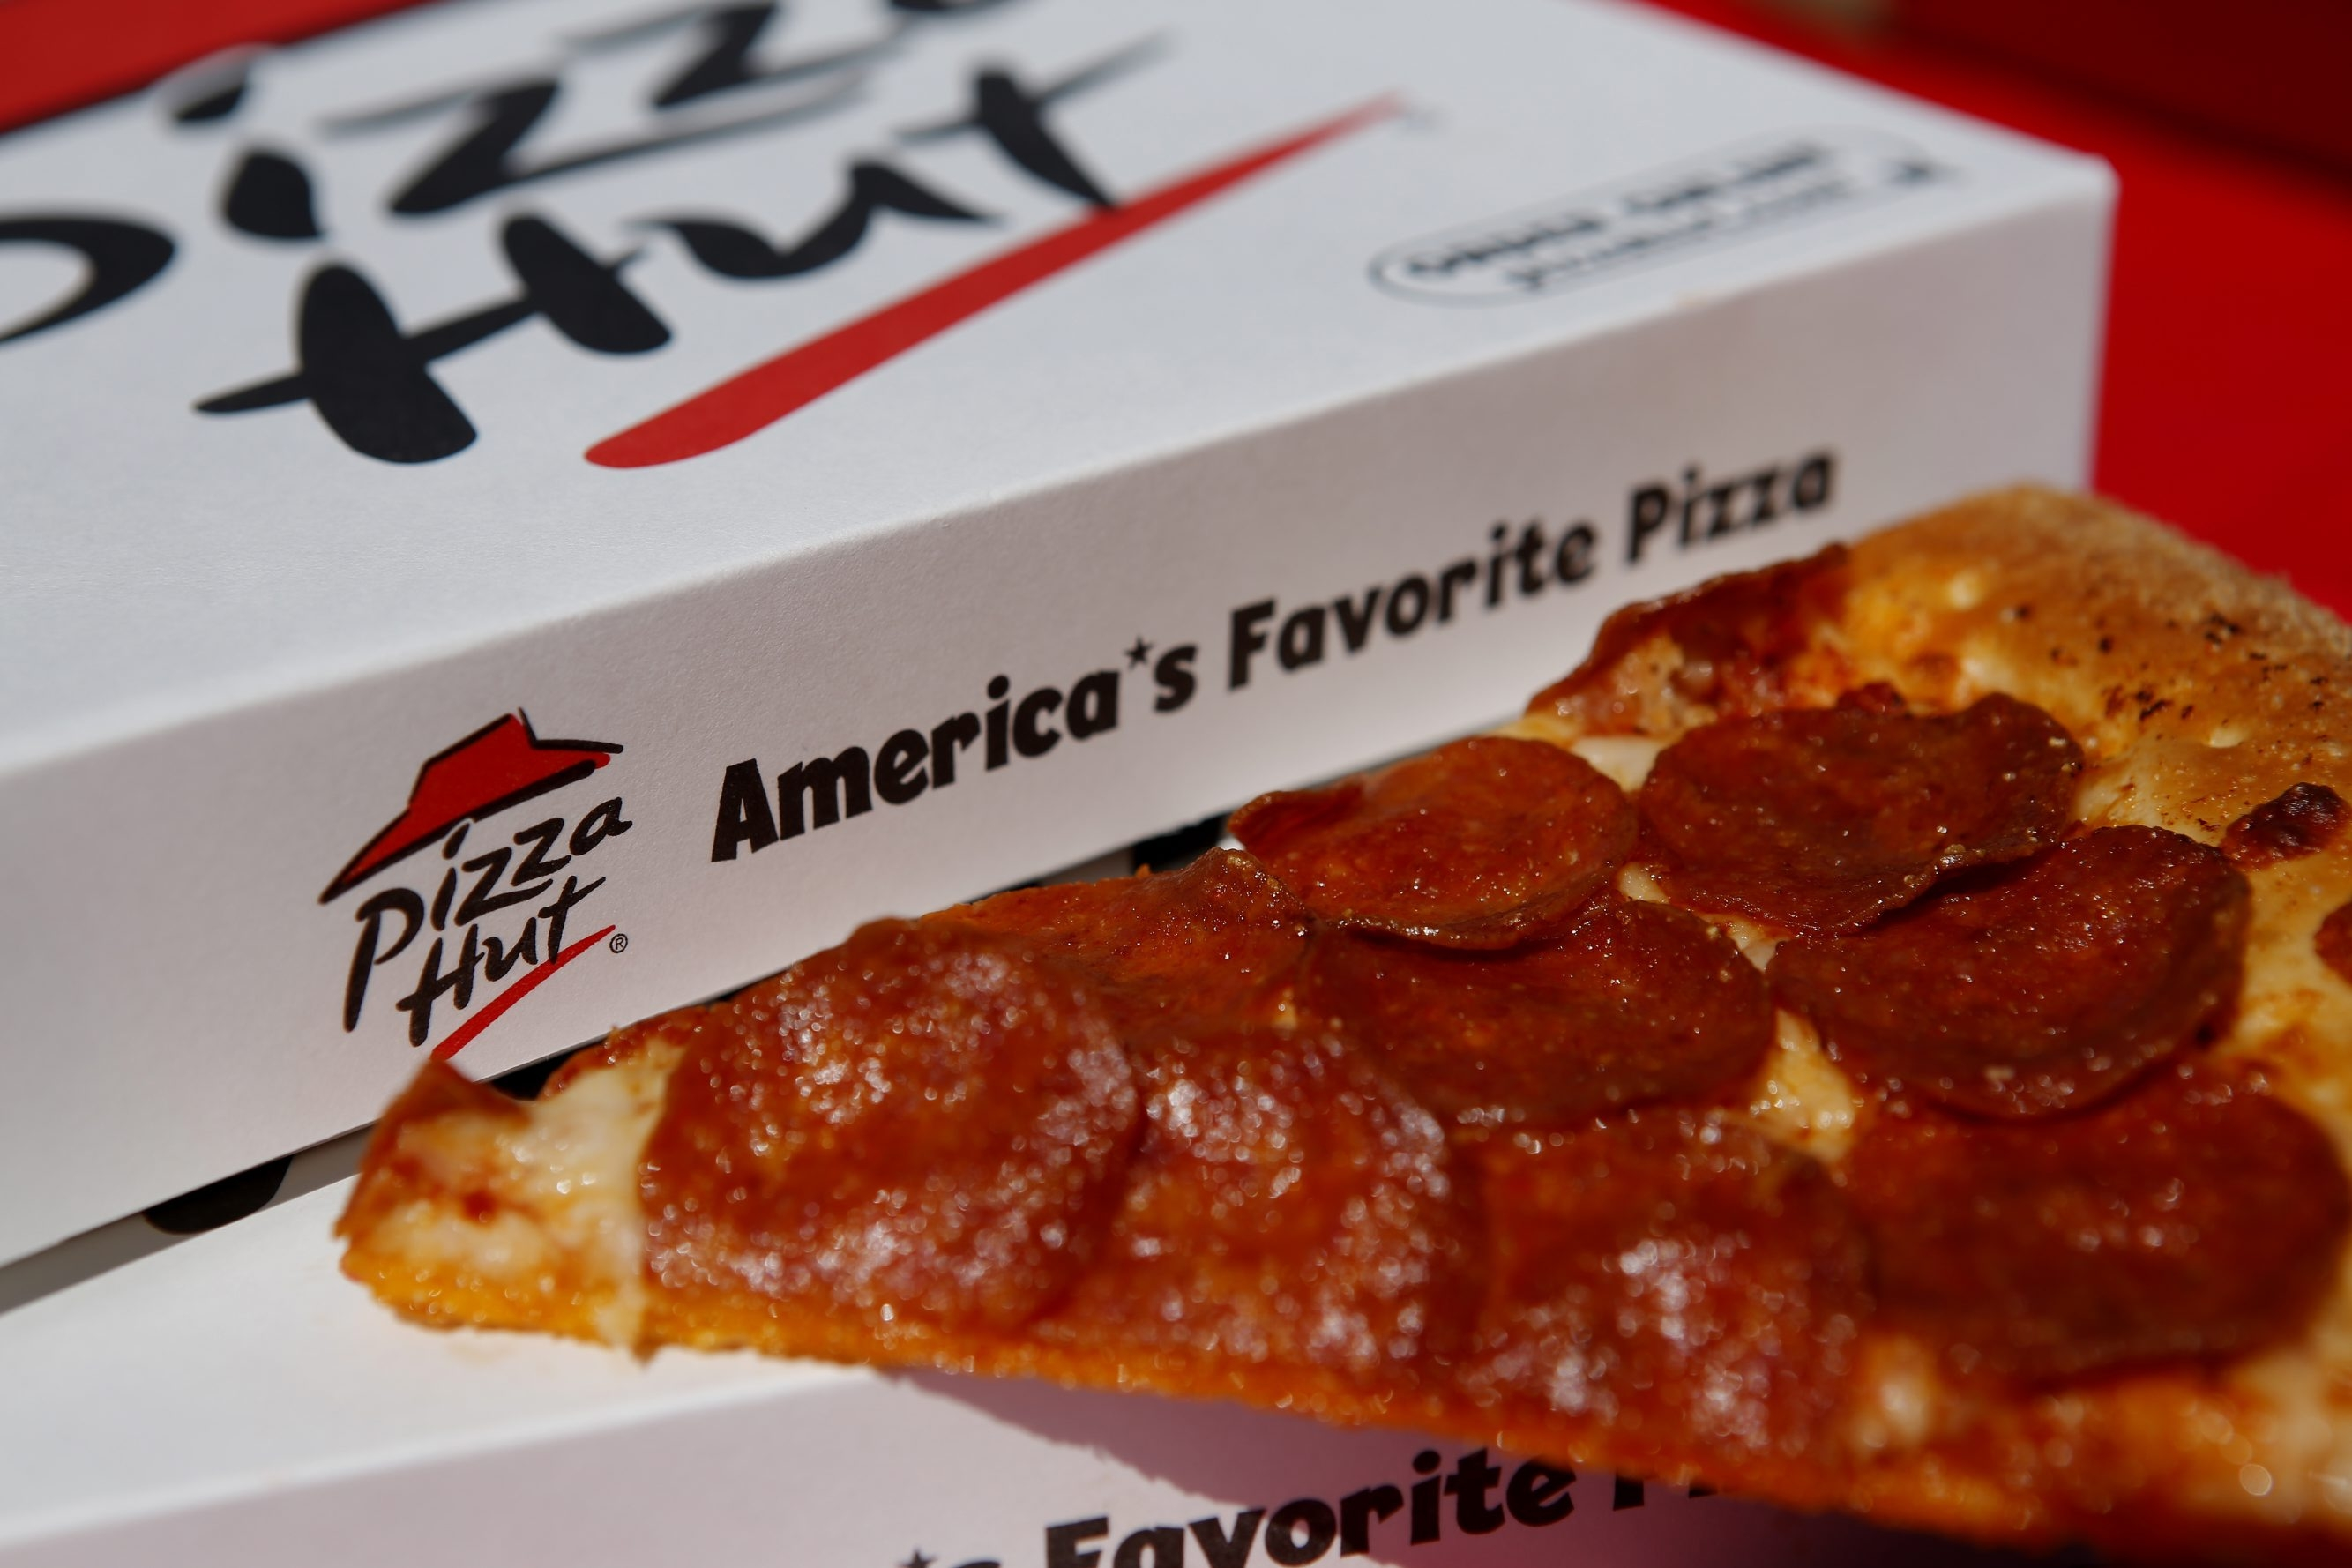 A pepperoni pizza from a Pizza Hut restaurant, a unit of Yum! Brands Inc., is arranged for a photograph in Torrance, California, U.S., on Monday, Oct. 7, 2013. Yum! Brands Inc. is scheduled to release earnings data on Oct. 8. Photographer: Patrick T. Fallon/Bloomberg